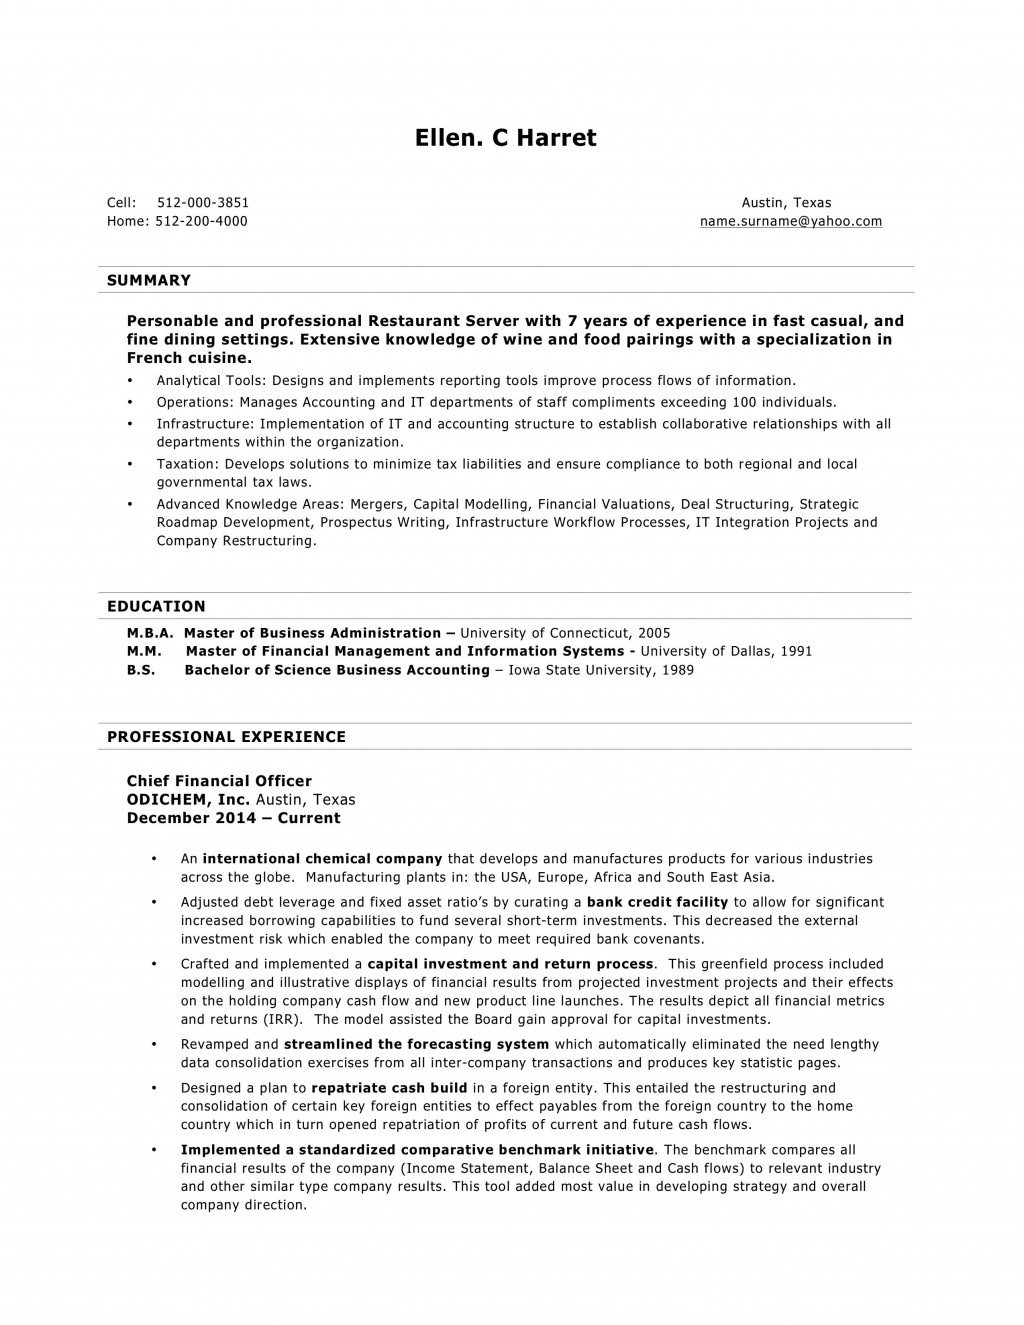 011 Unforgettable Free Professional Resume Template Microsoft Word High Definition  Cv 2010Large